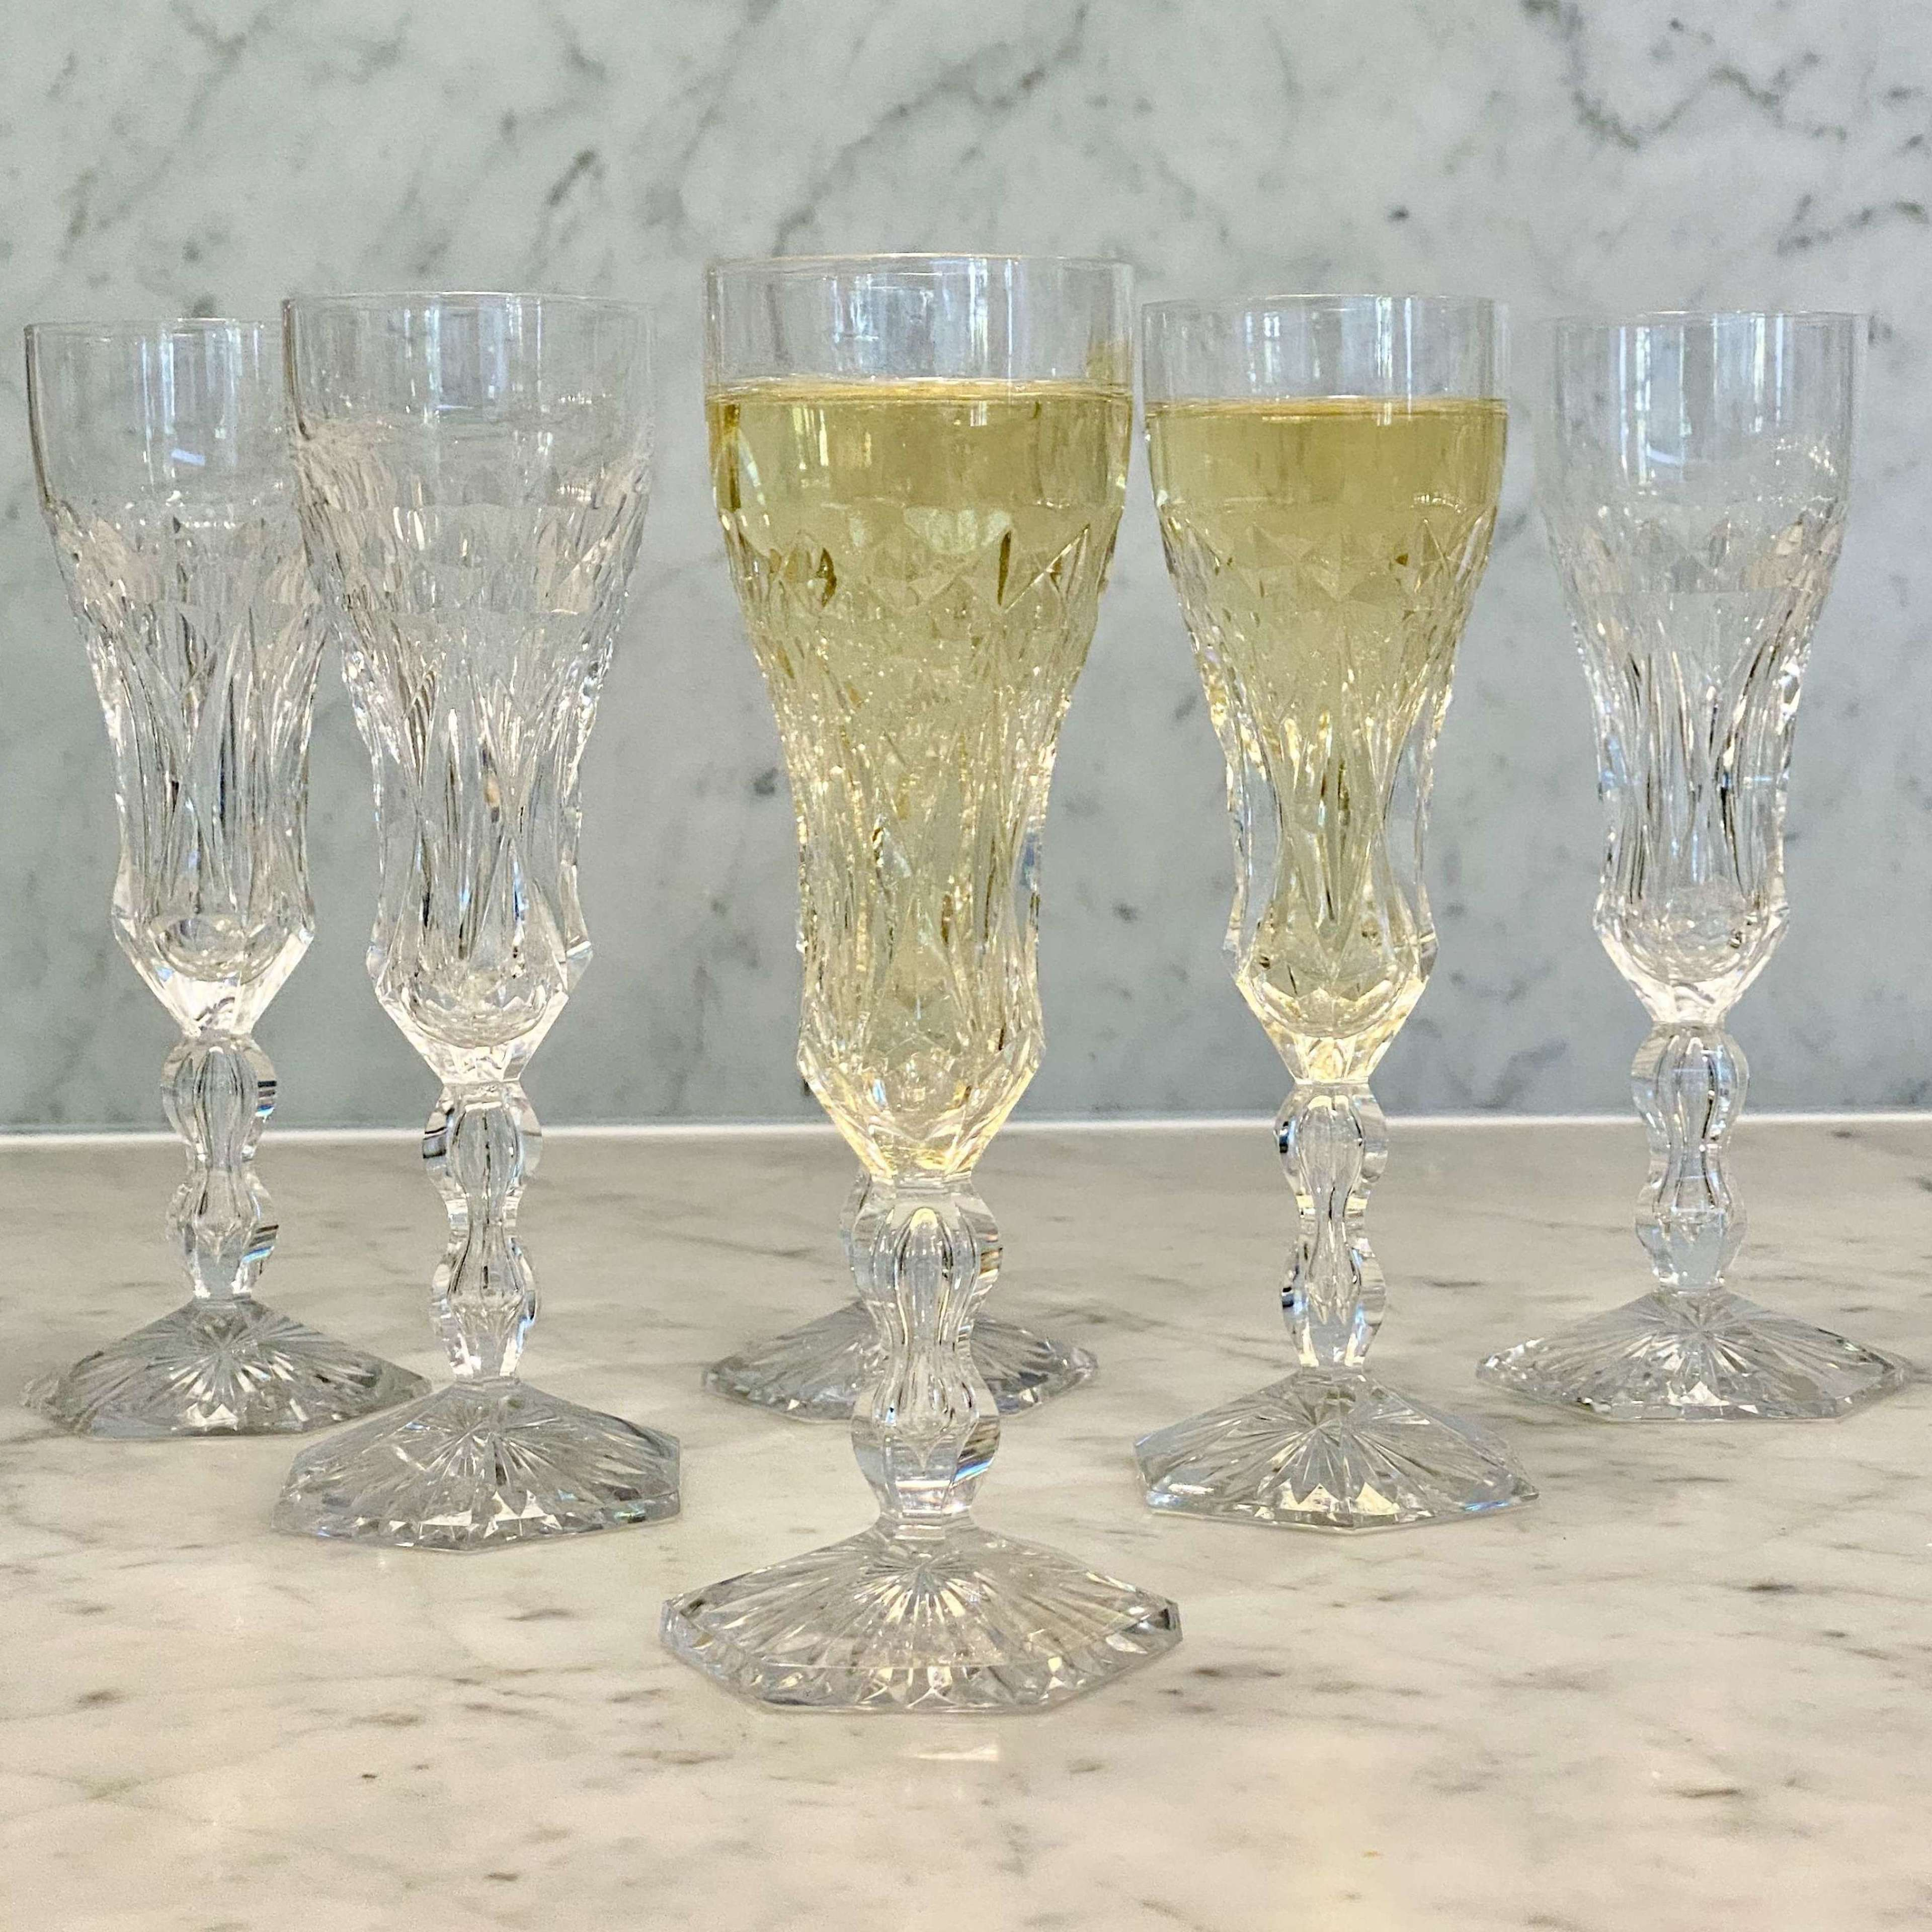 Val Saint Lambert finest crystal champagne flutes in Lalaing Fantaisie